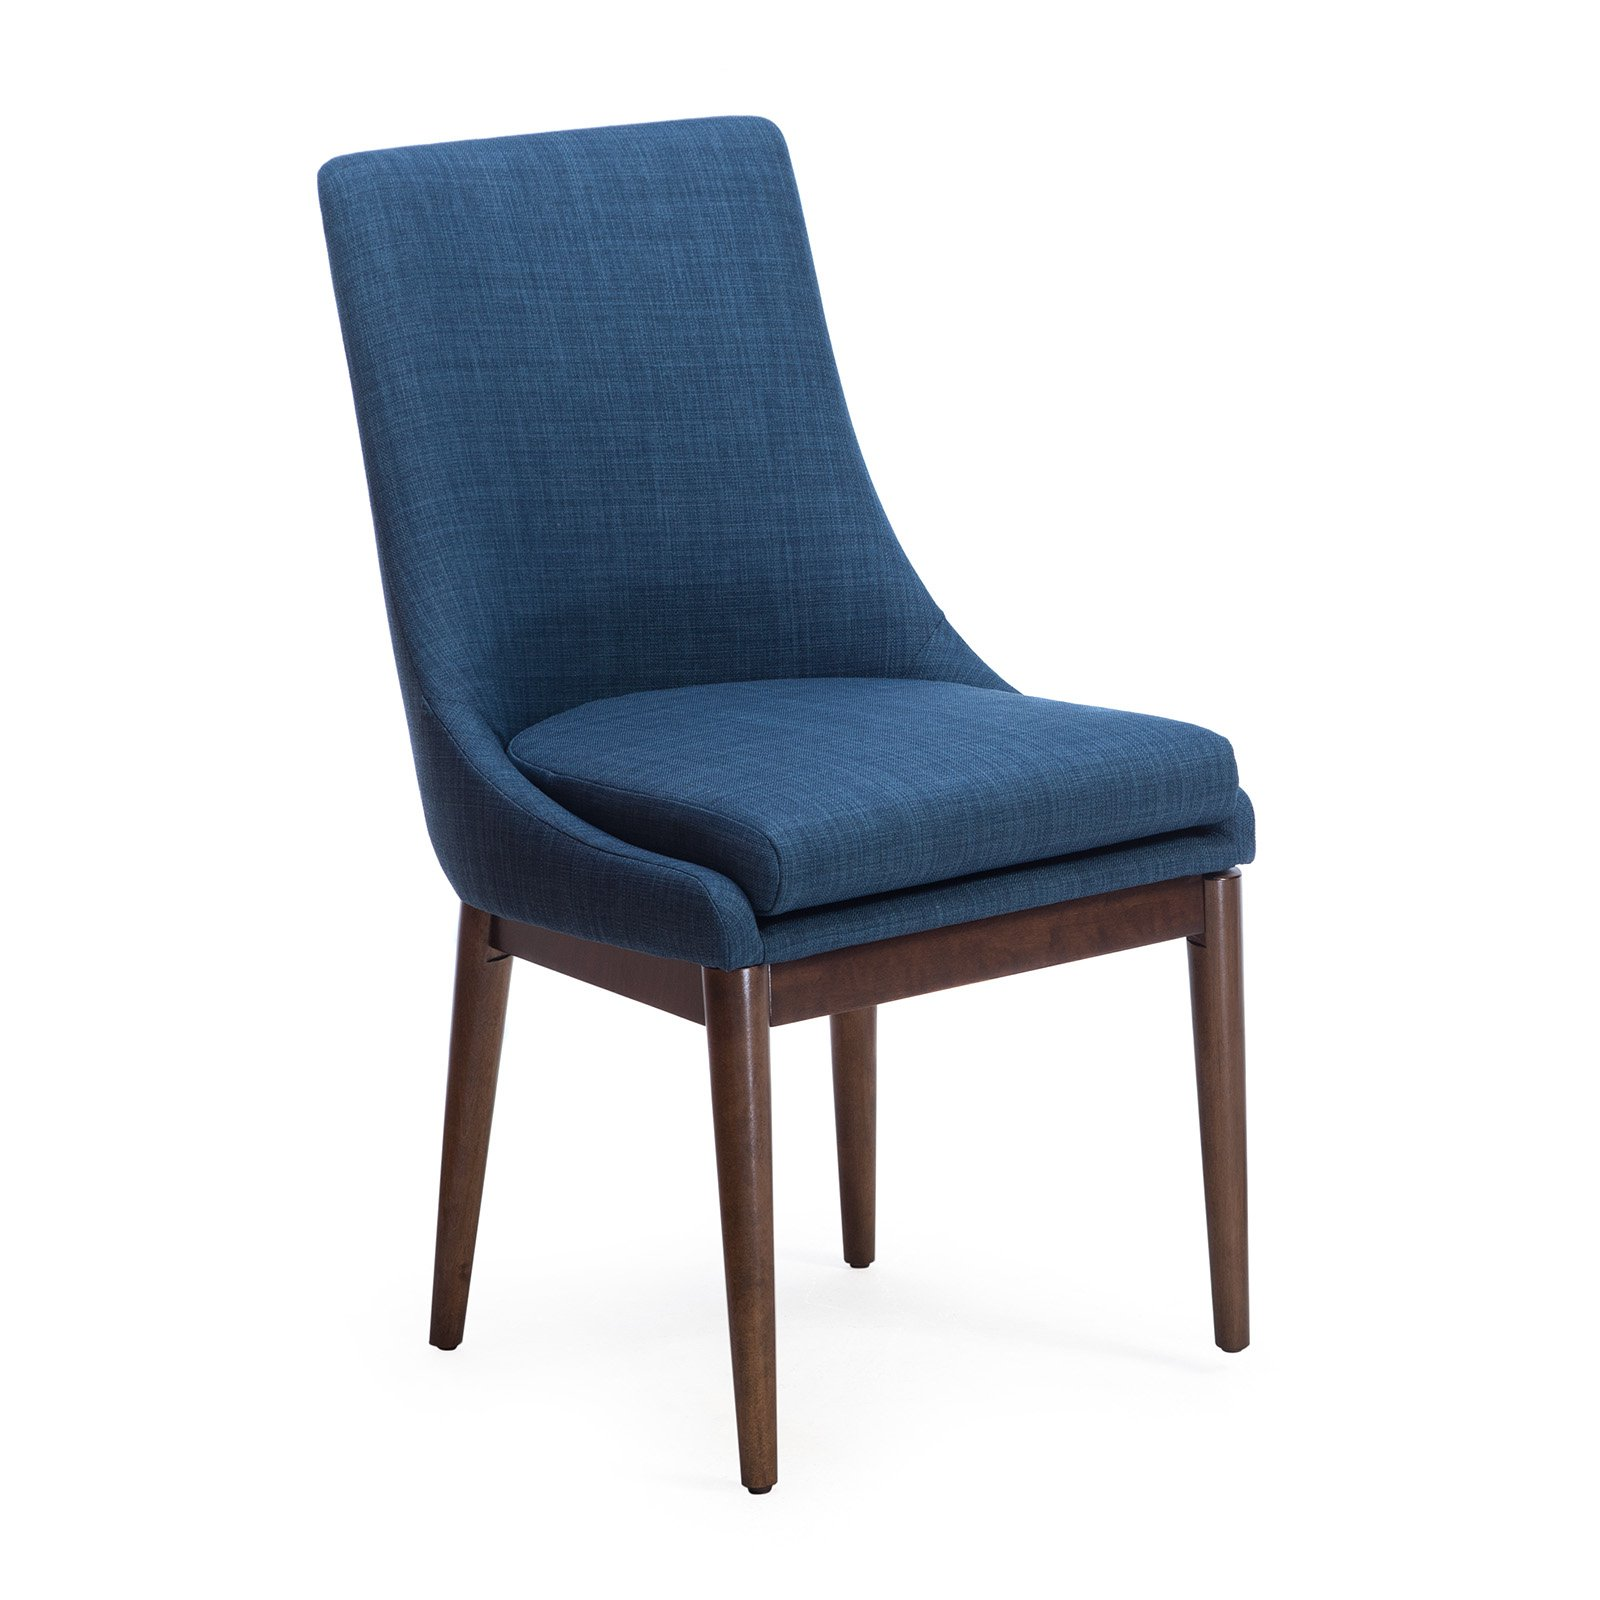 Belham Living Carter Mid Century Modern Upholstered Dining Chair